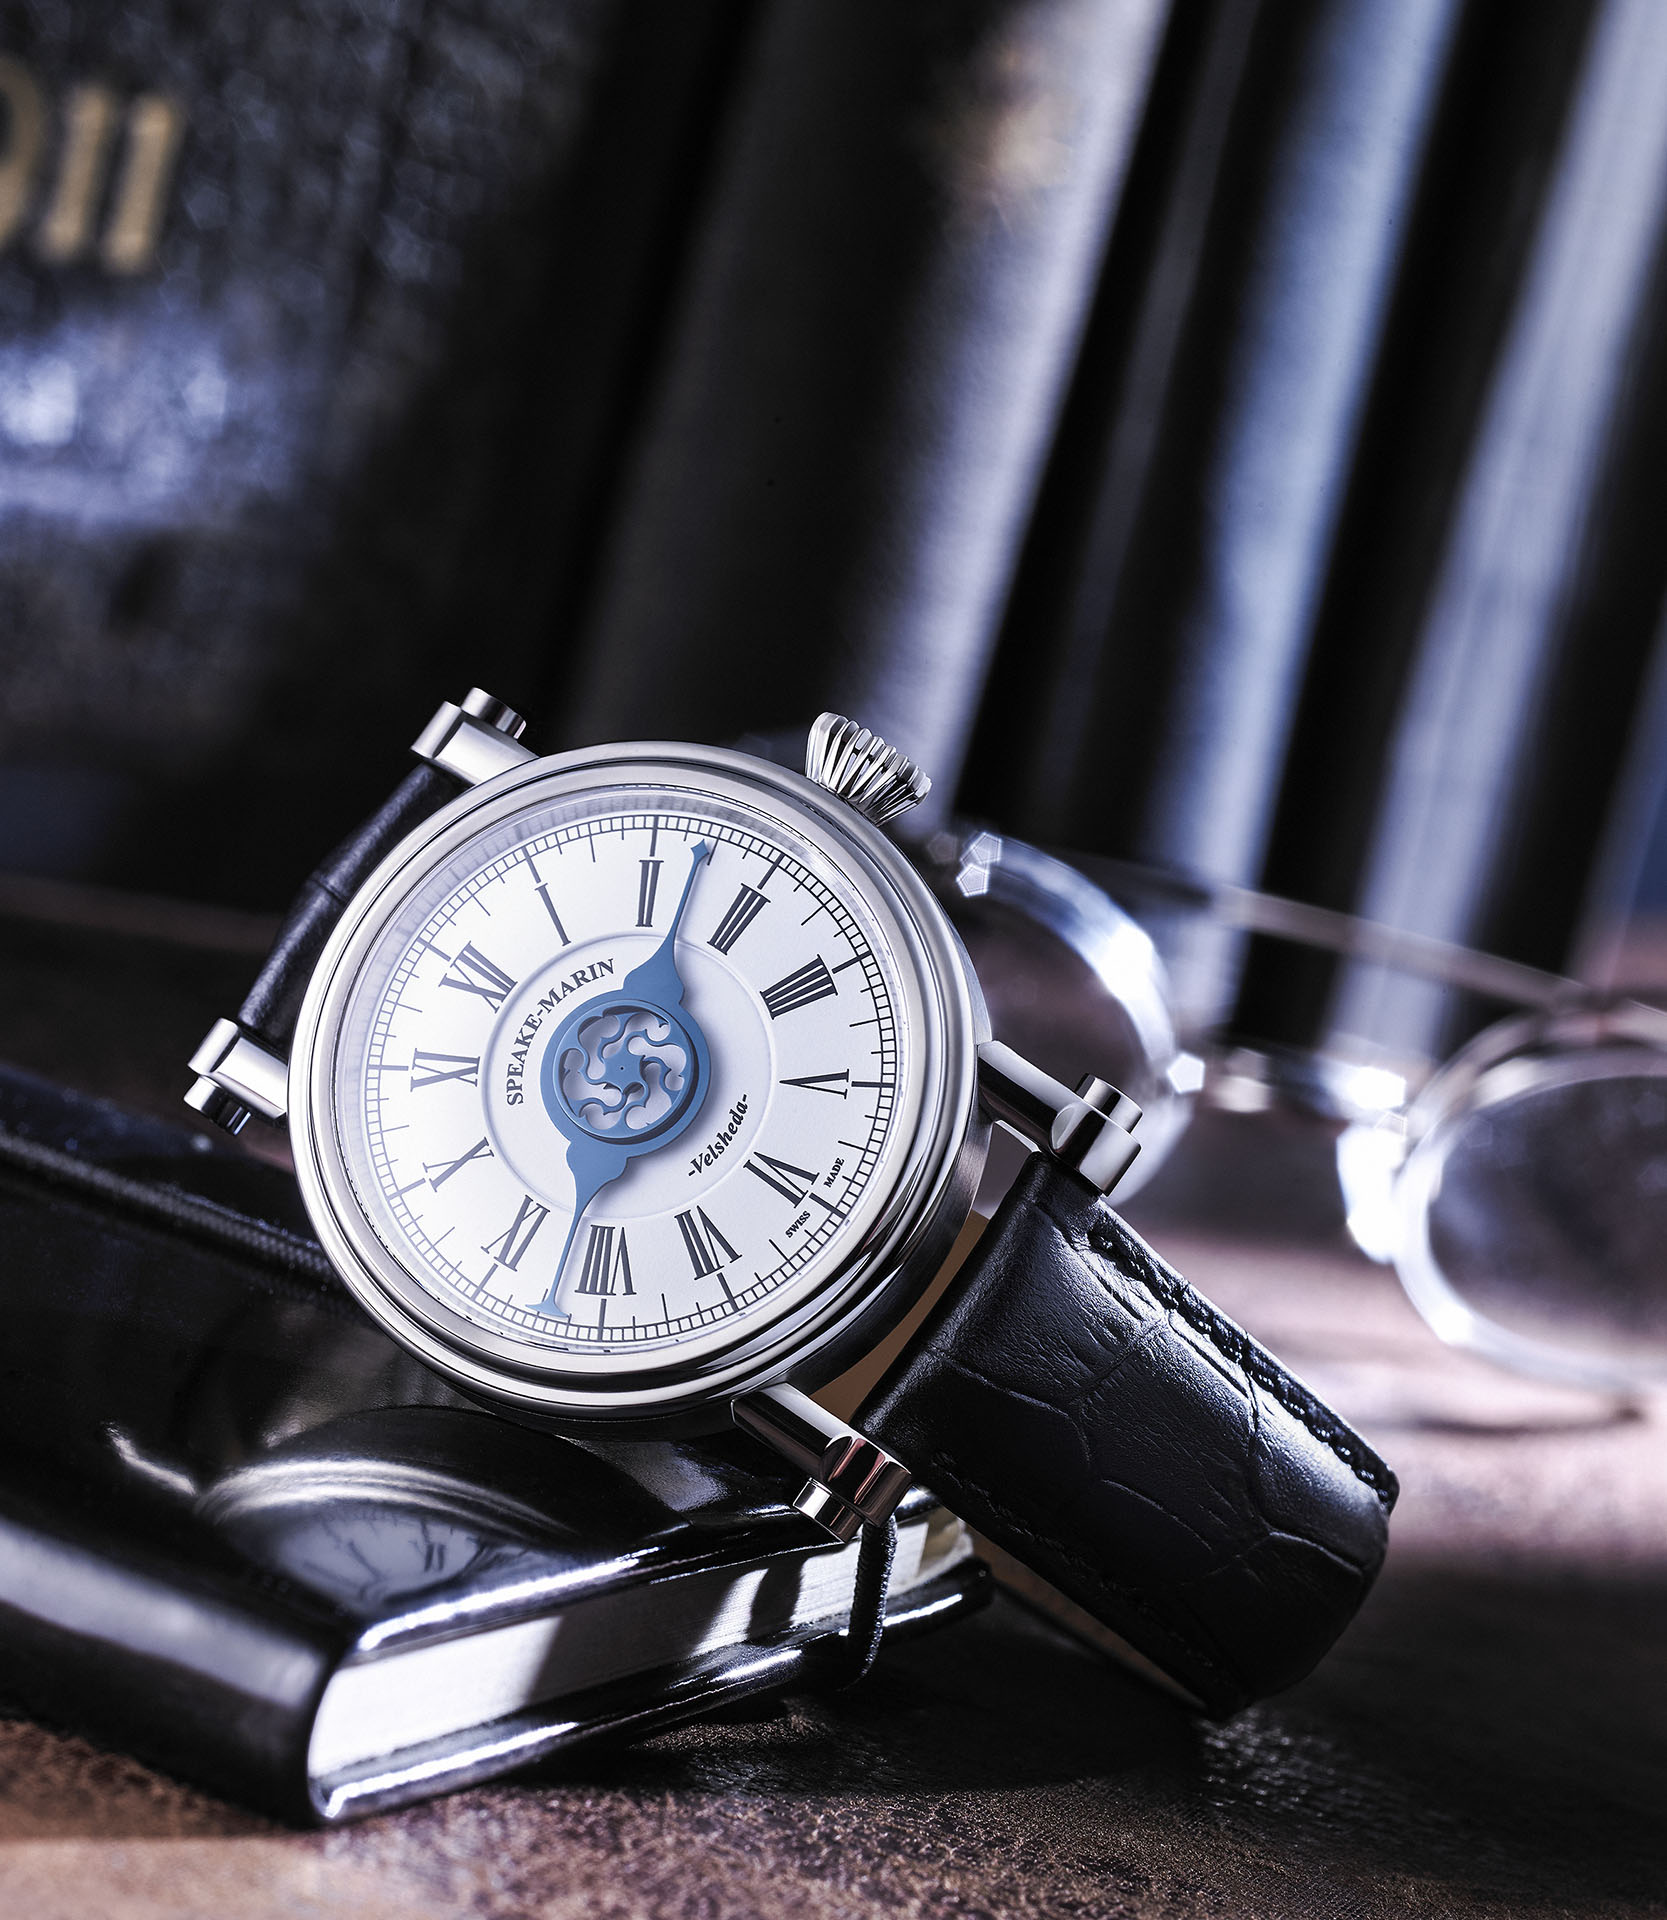 Speake Marin Still life91406-OK